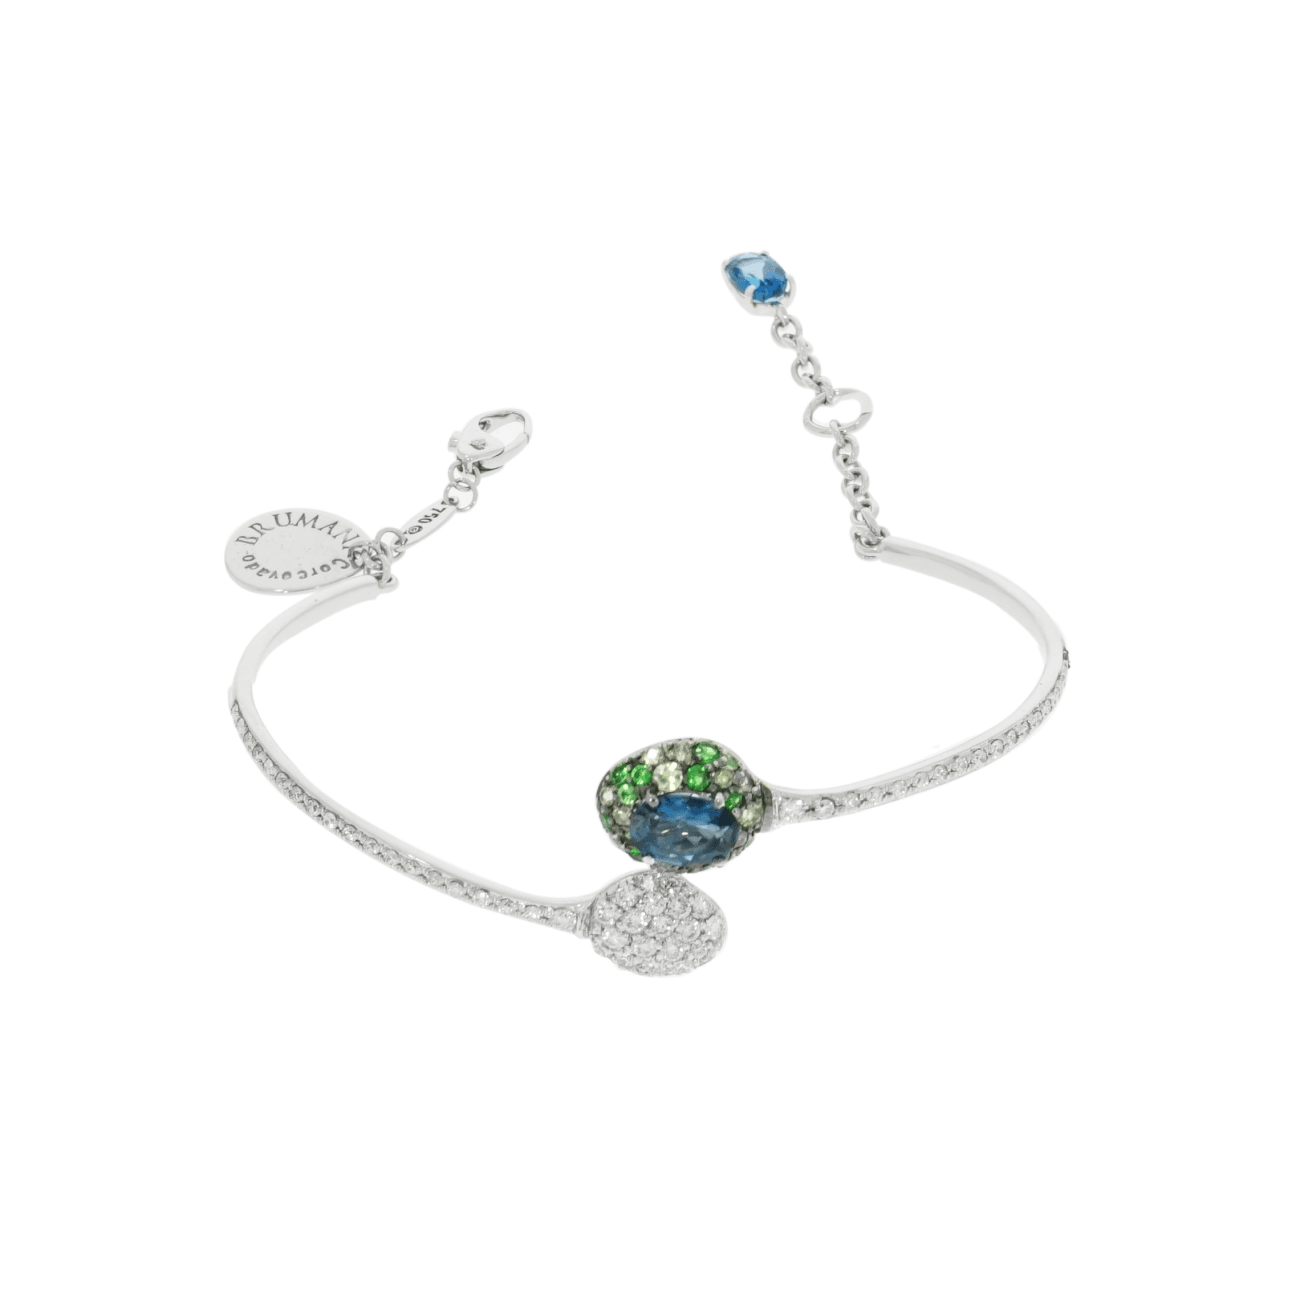 Brumani Jewelry - Blue and Green Tourmaline with Pave Bracelet | Manfredi Jewels